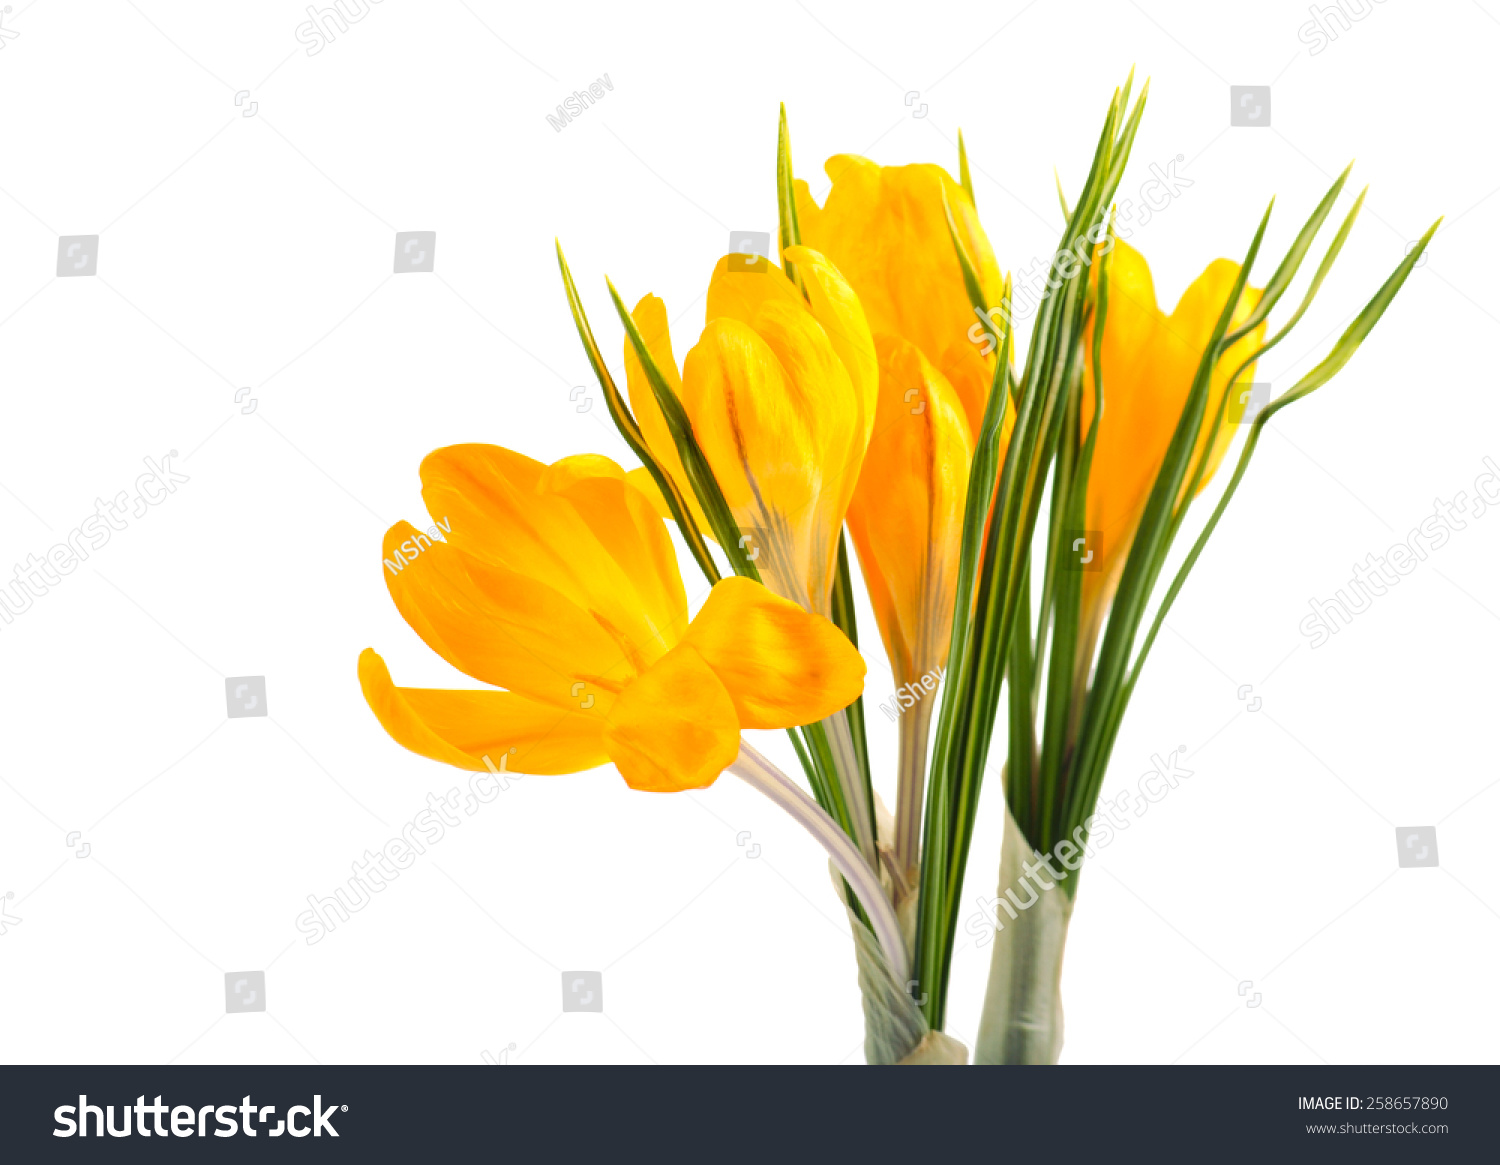 Yellow Crocus Flowers With Leaves Over White Background Ez Canvas